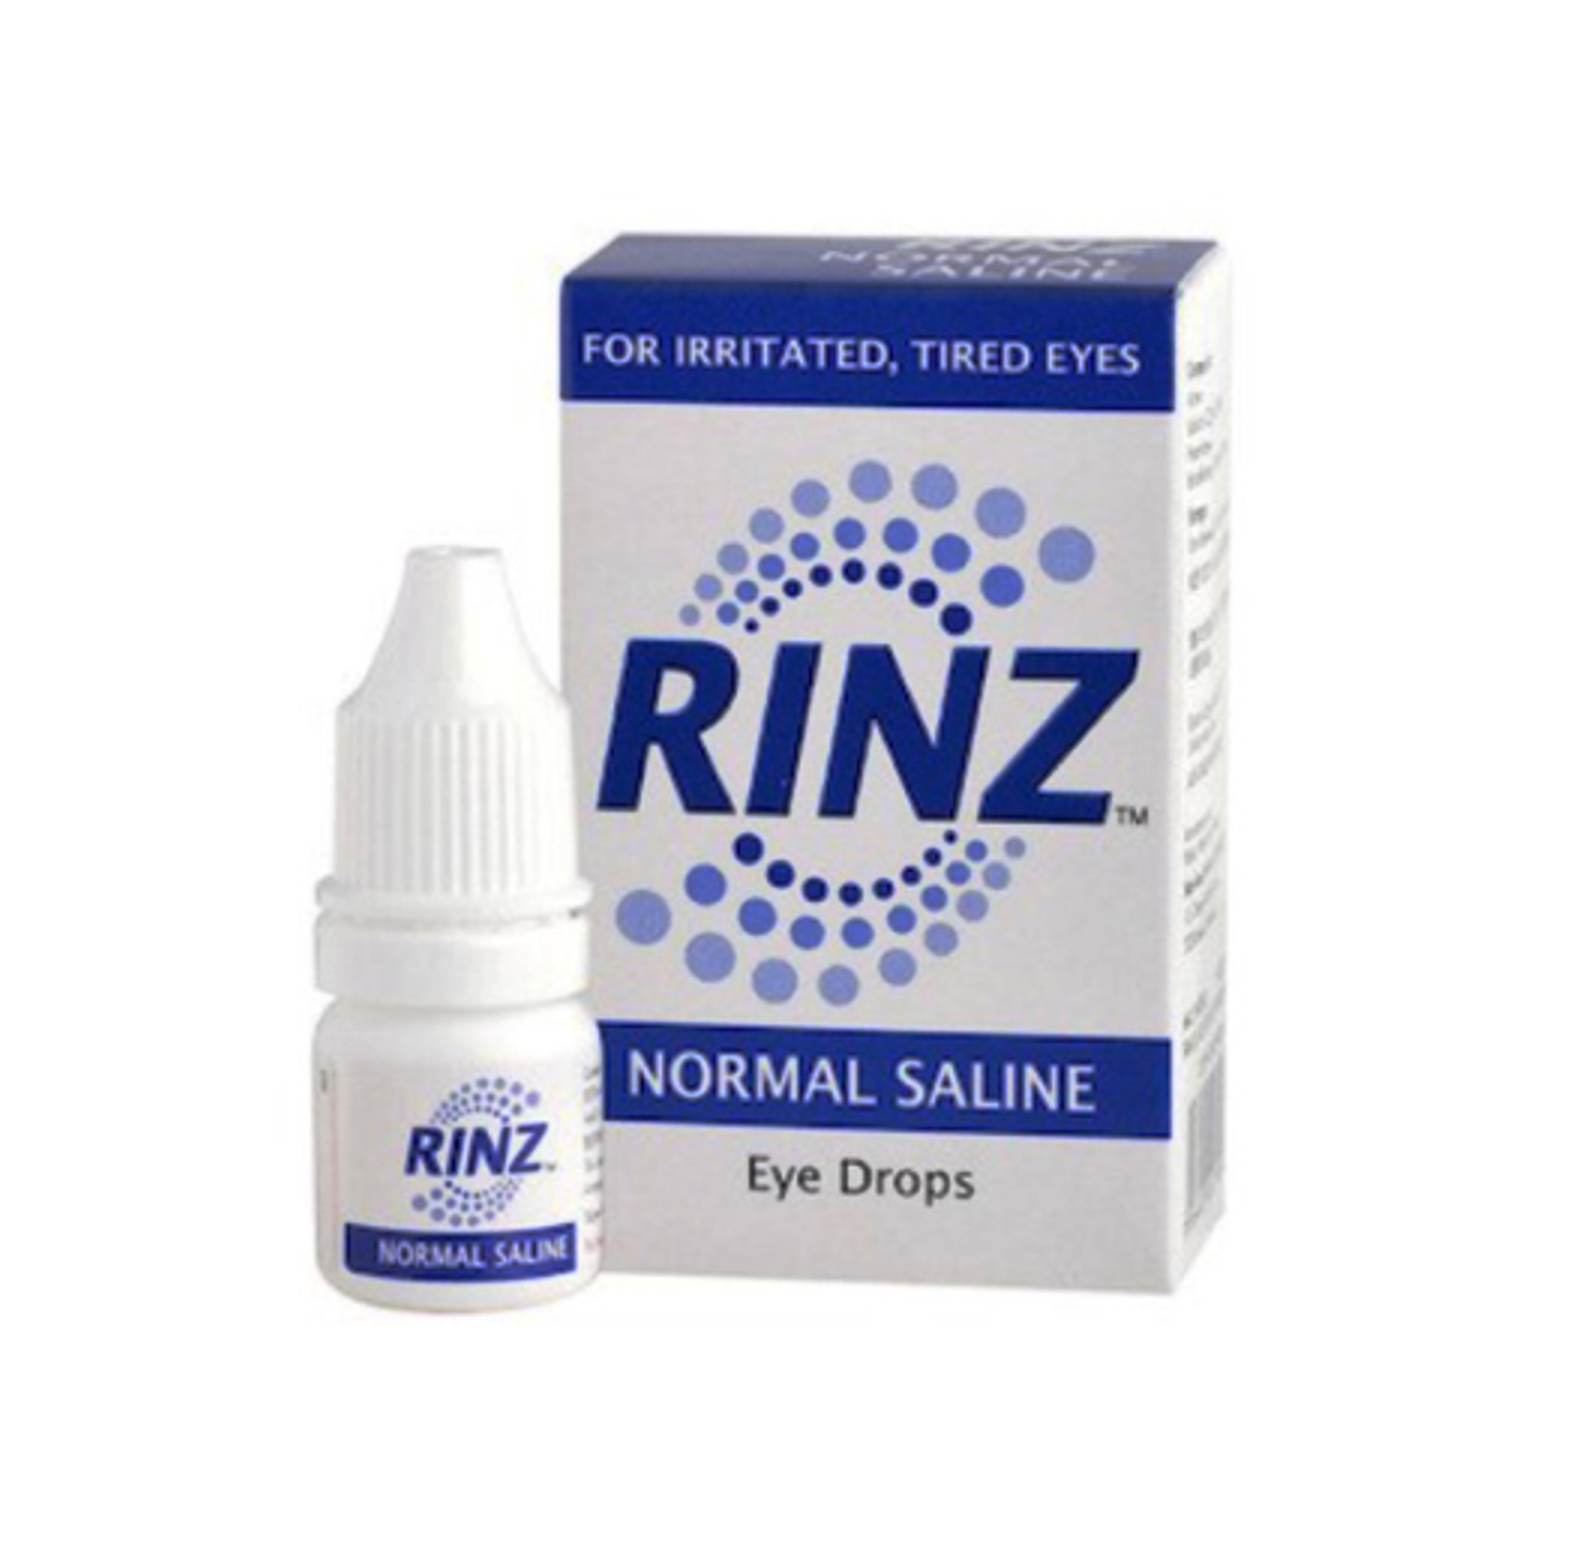 2 bottles Rinz Normal Saline Drops 5ml For Irritated & Tired Eyes